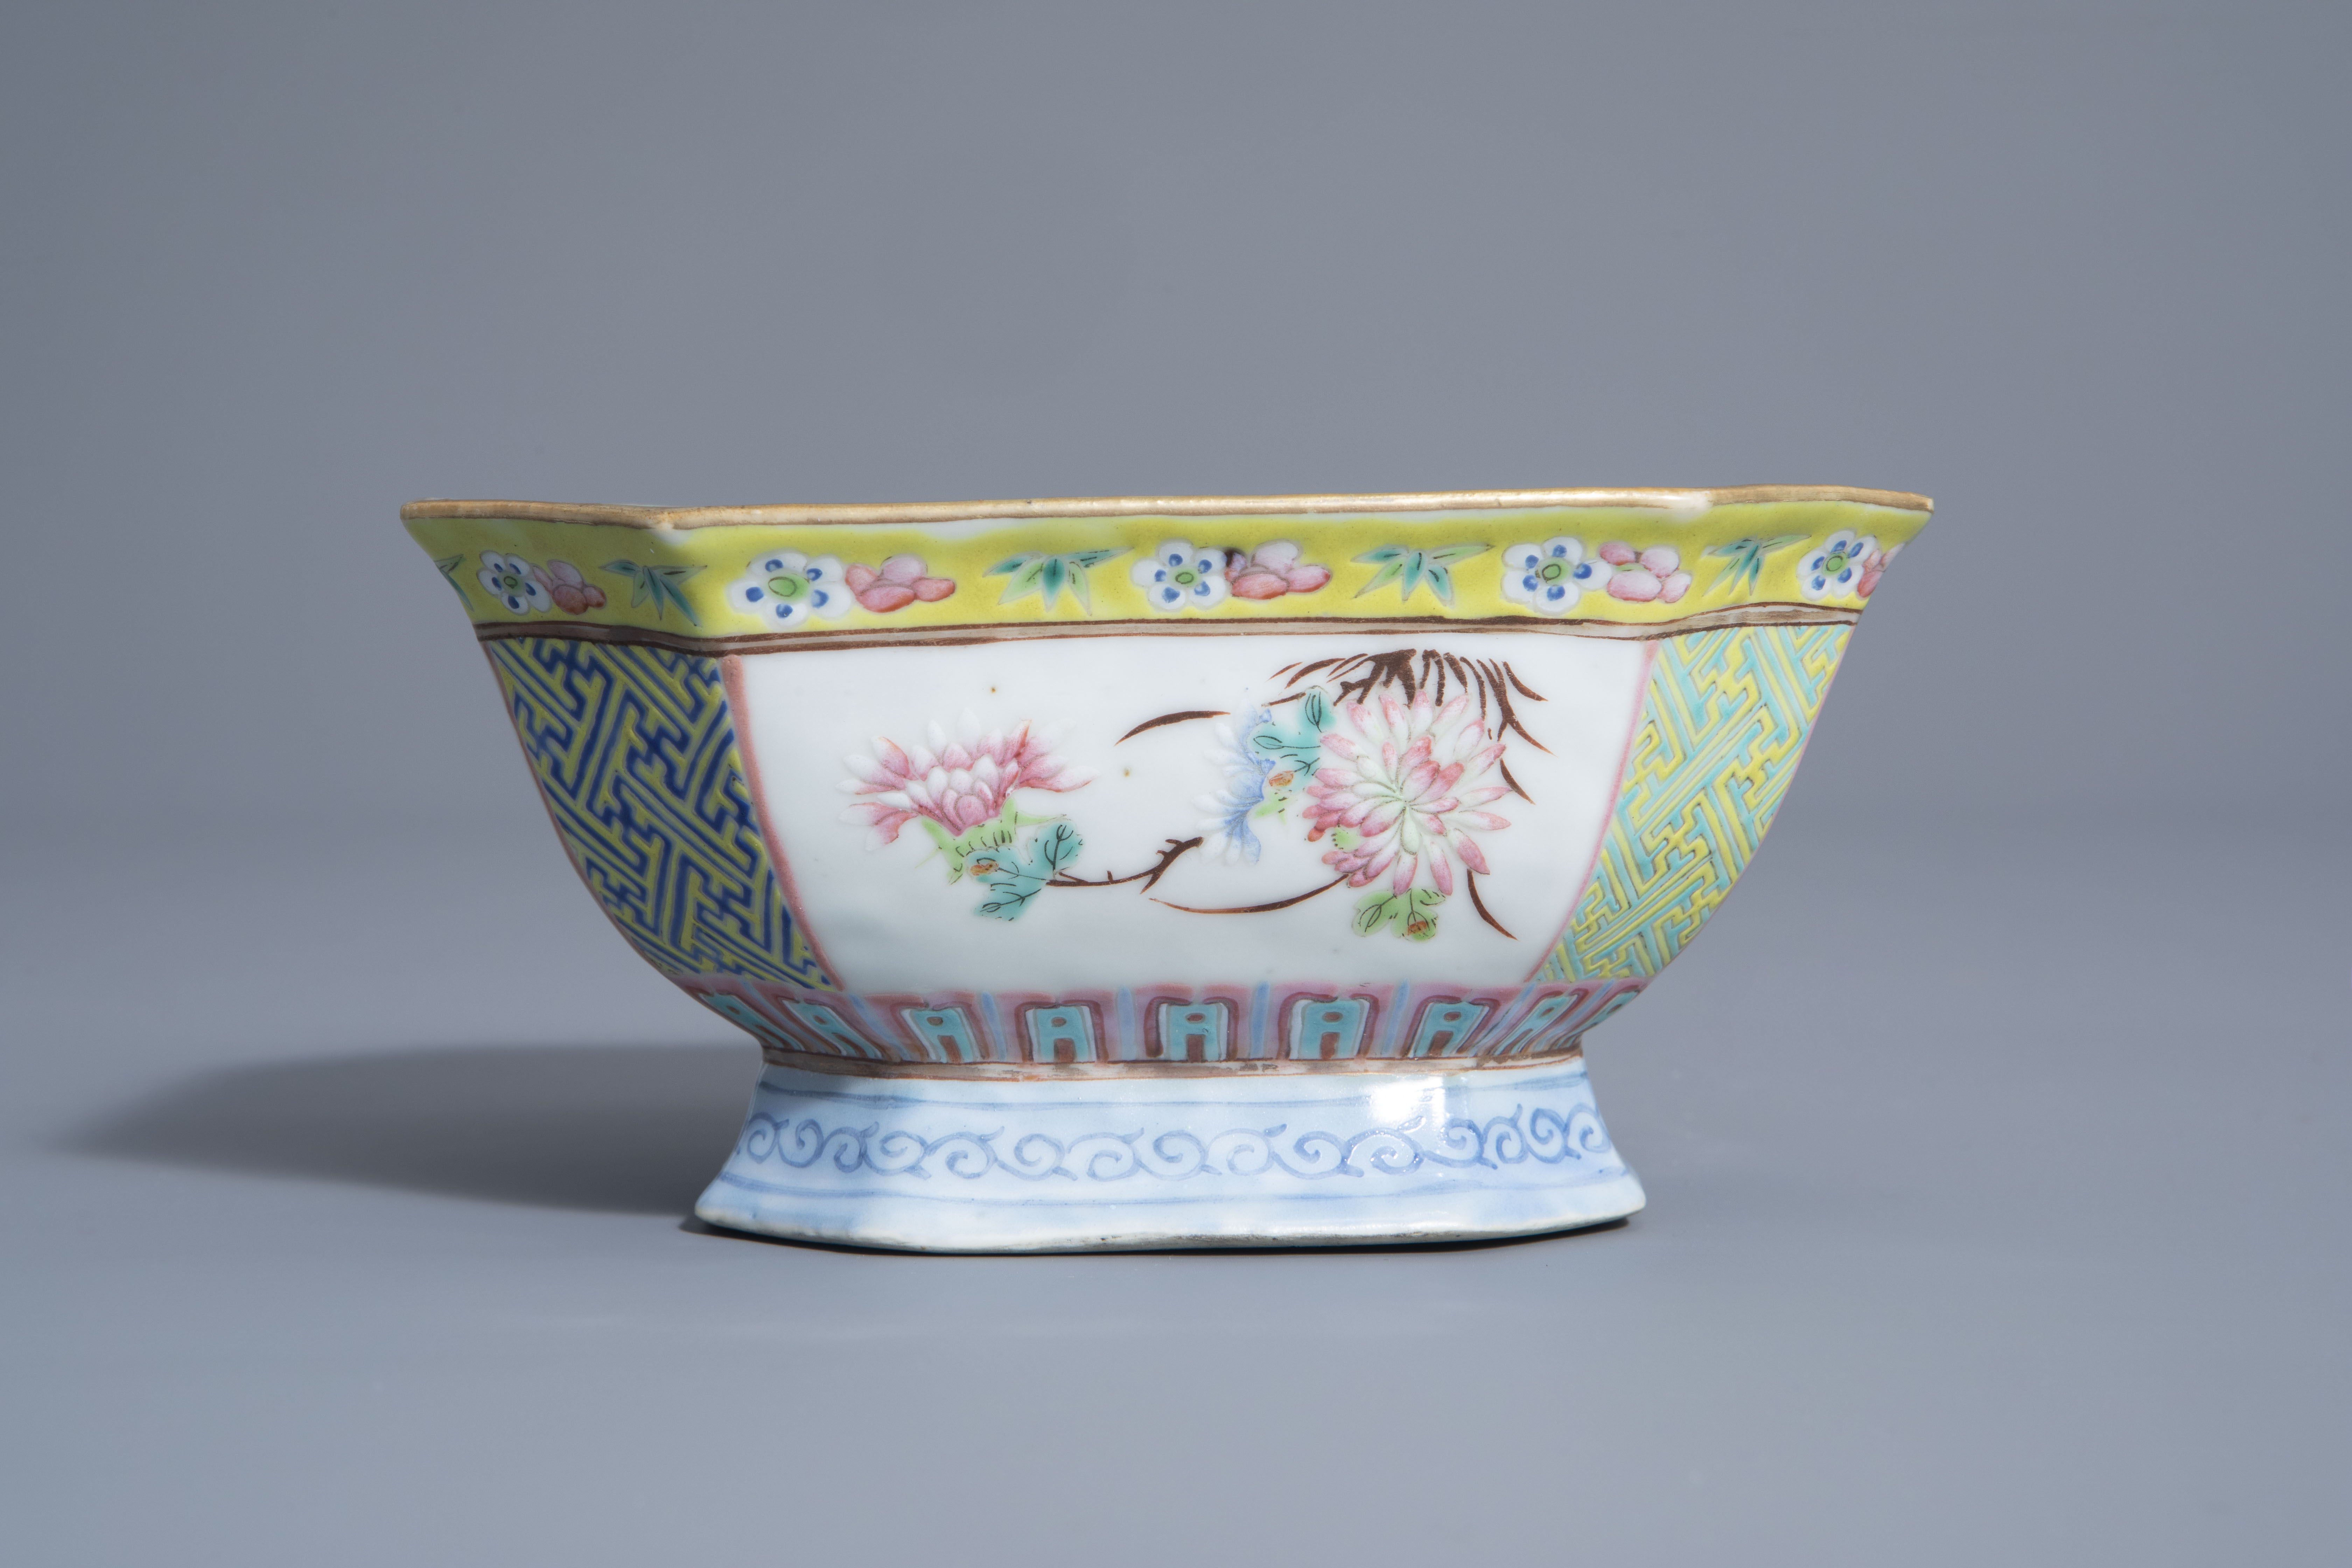 A Chinese famille rose octagonal bowl with floral design, Qianlong mark, 19th C. - Image 3 of 7